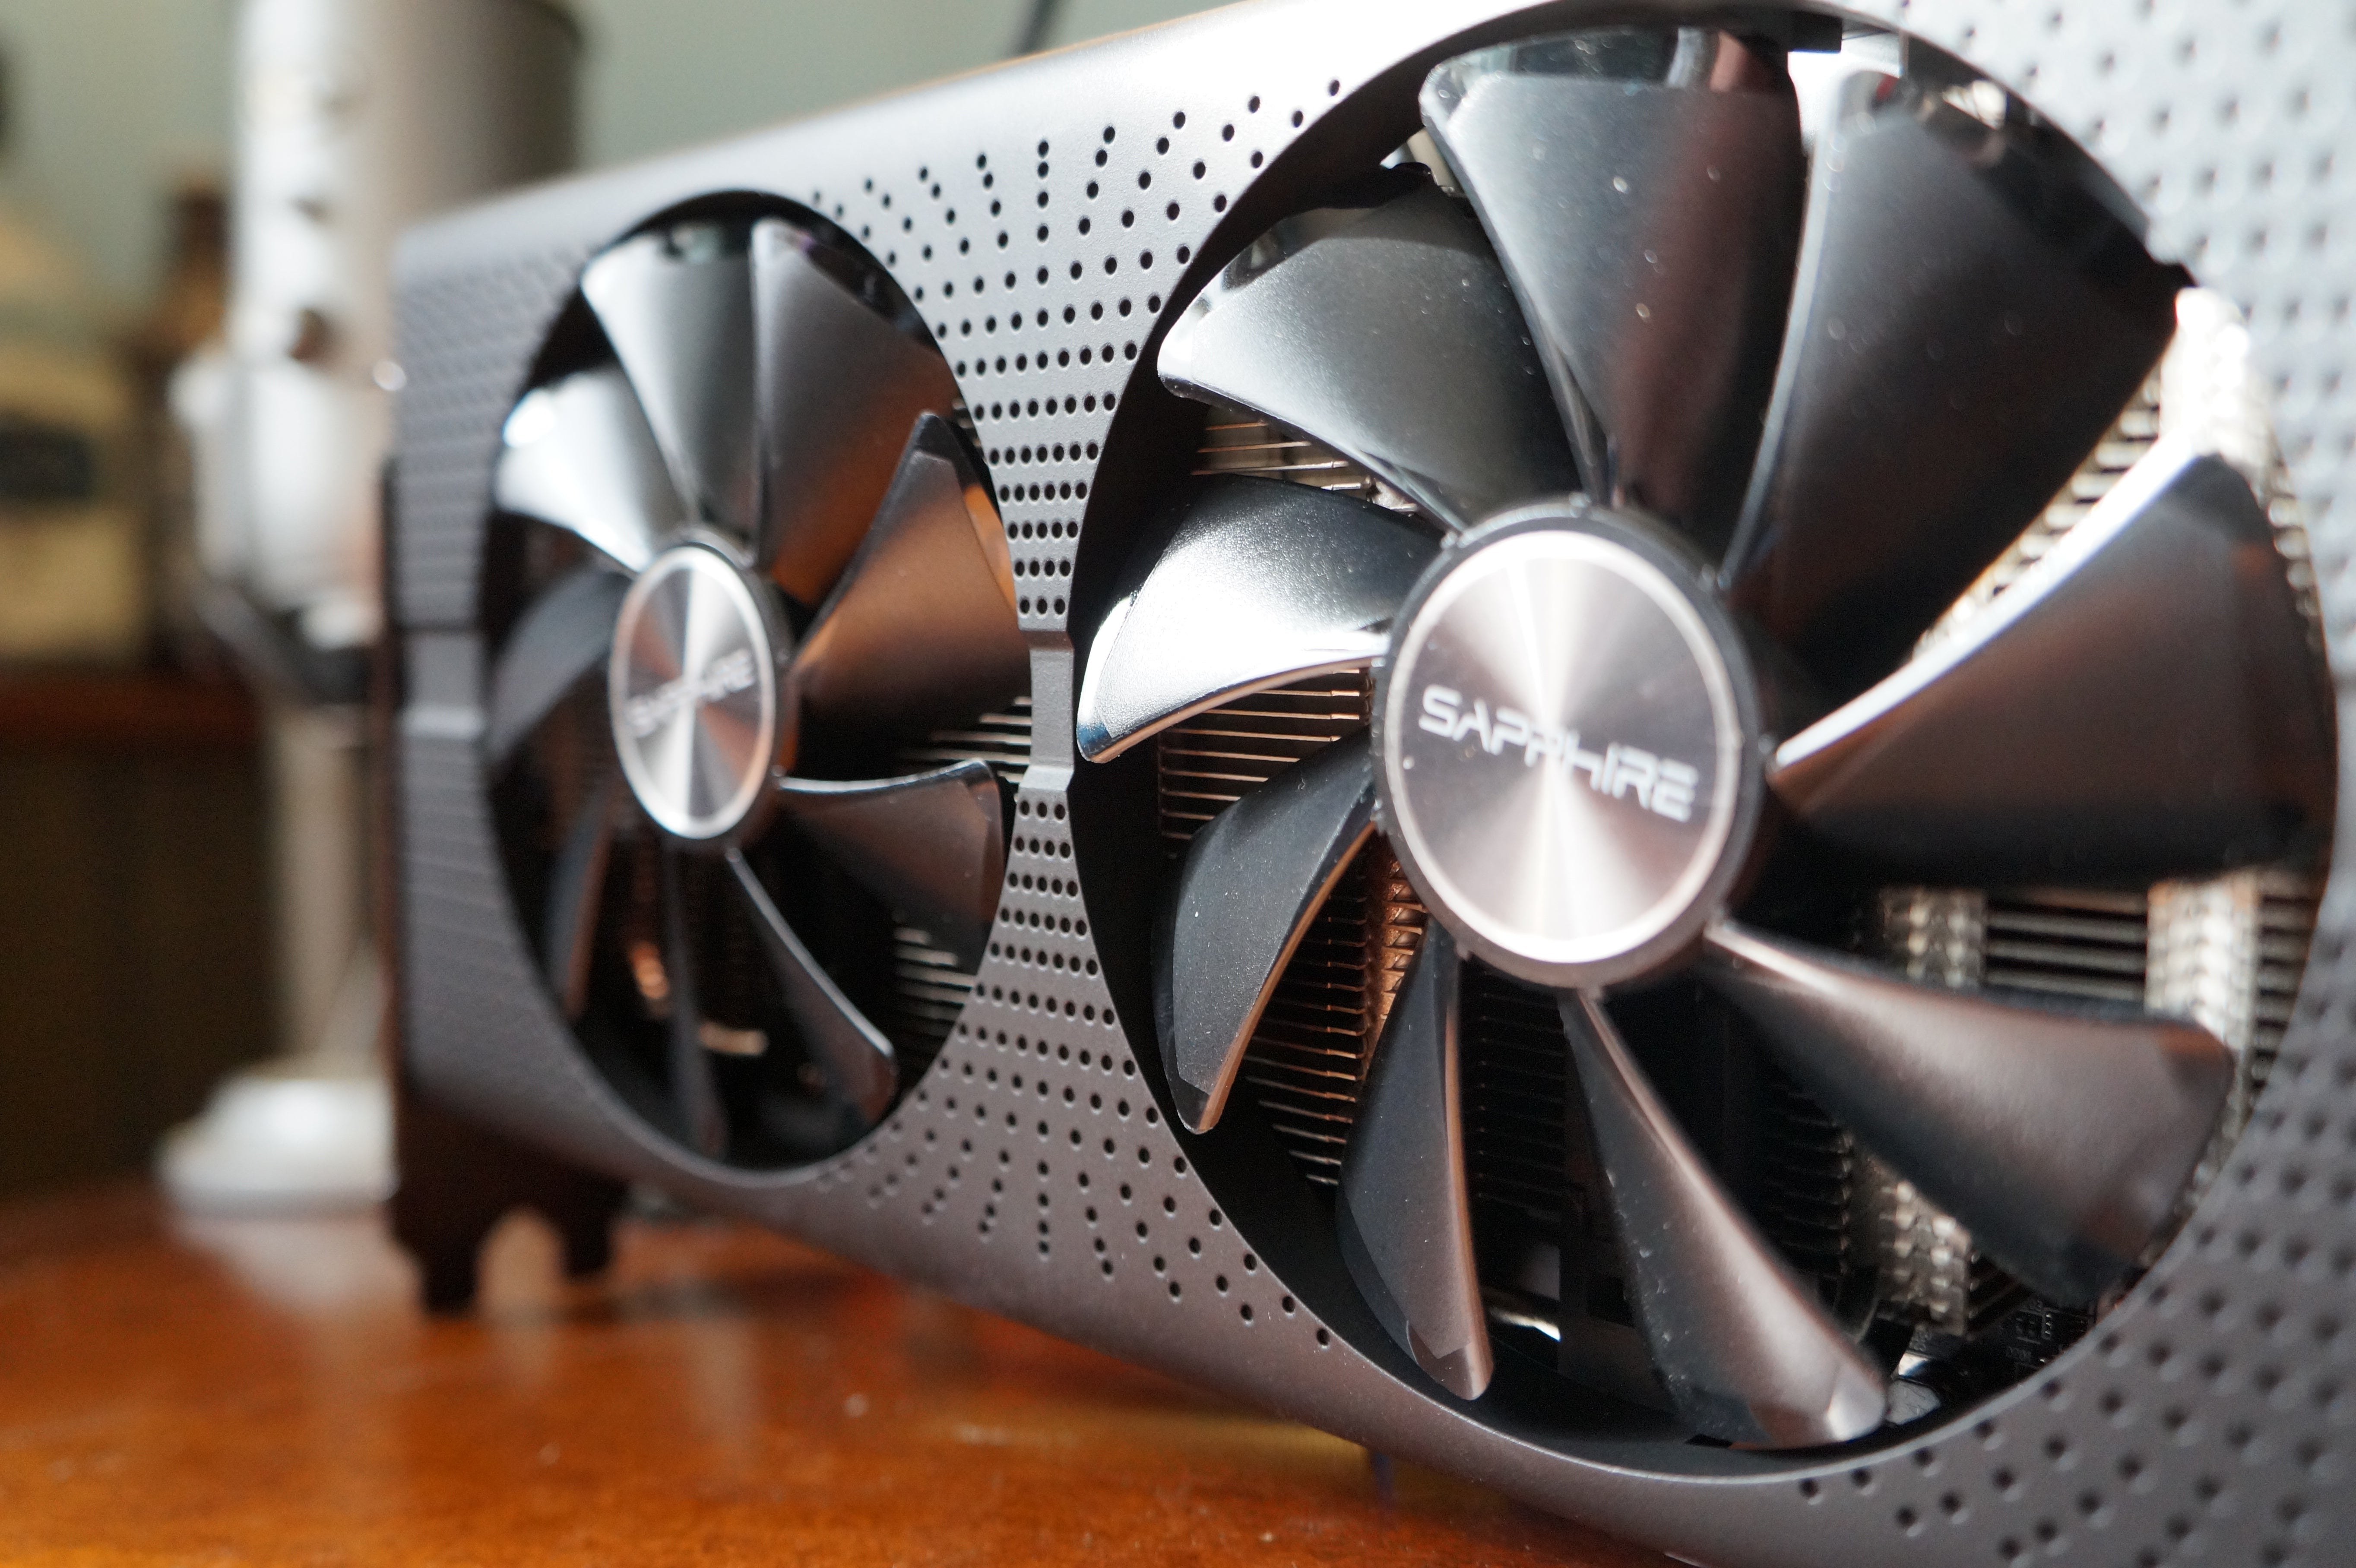 Sapphire Radeon Rx 570 Pulse And Rx 580 Pulse Review Solid Gaming On A Tight Budget Pc World Australia